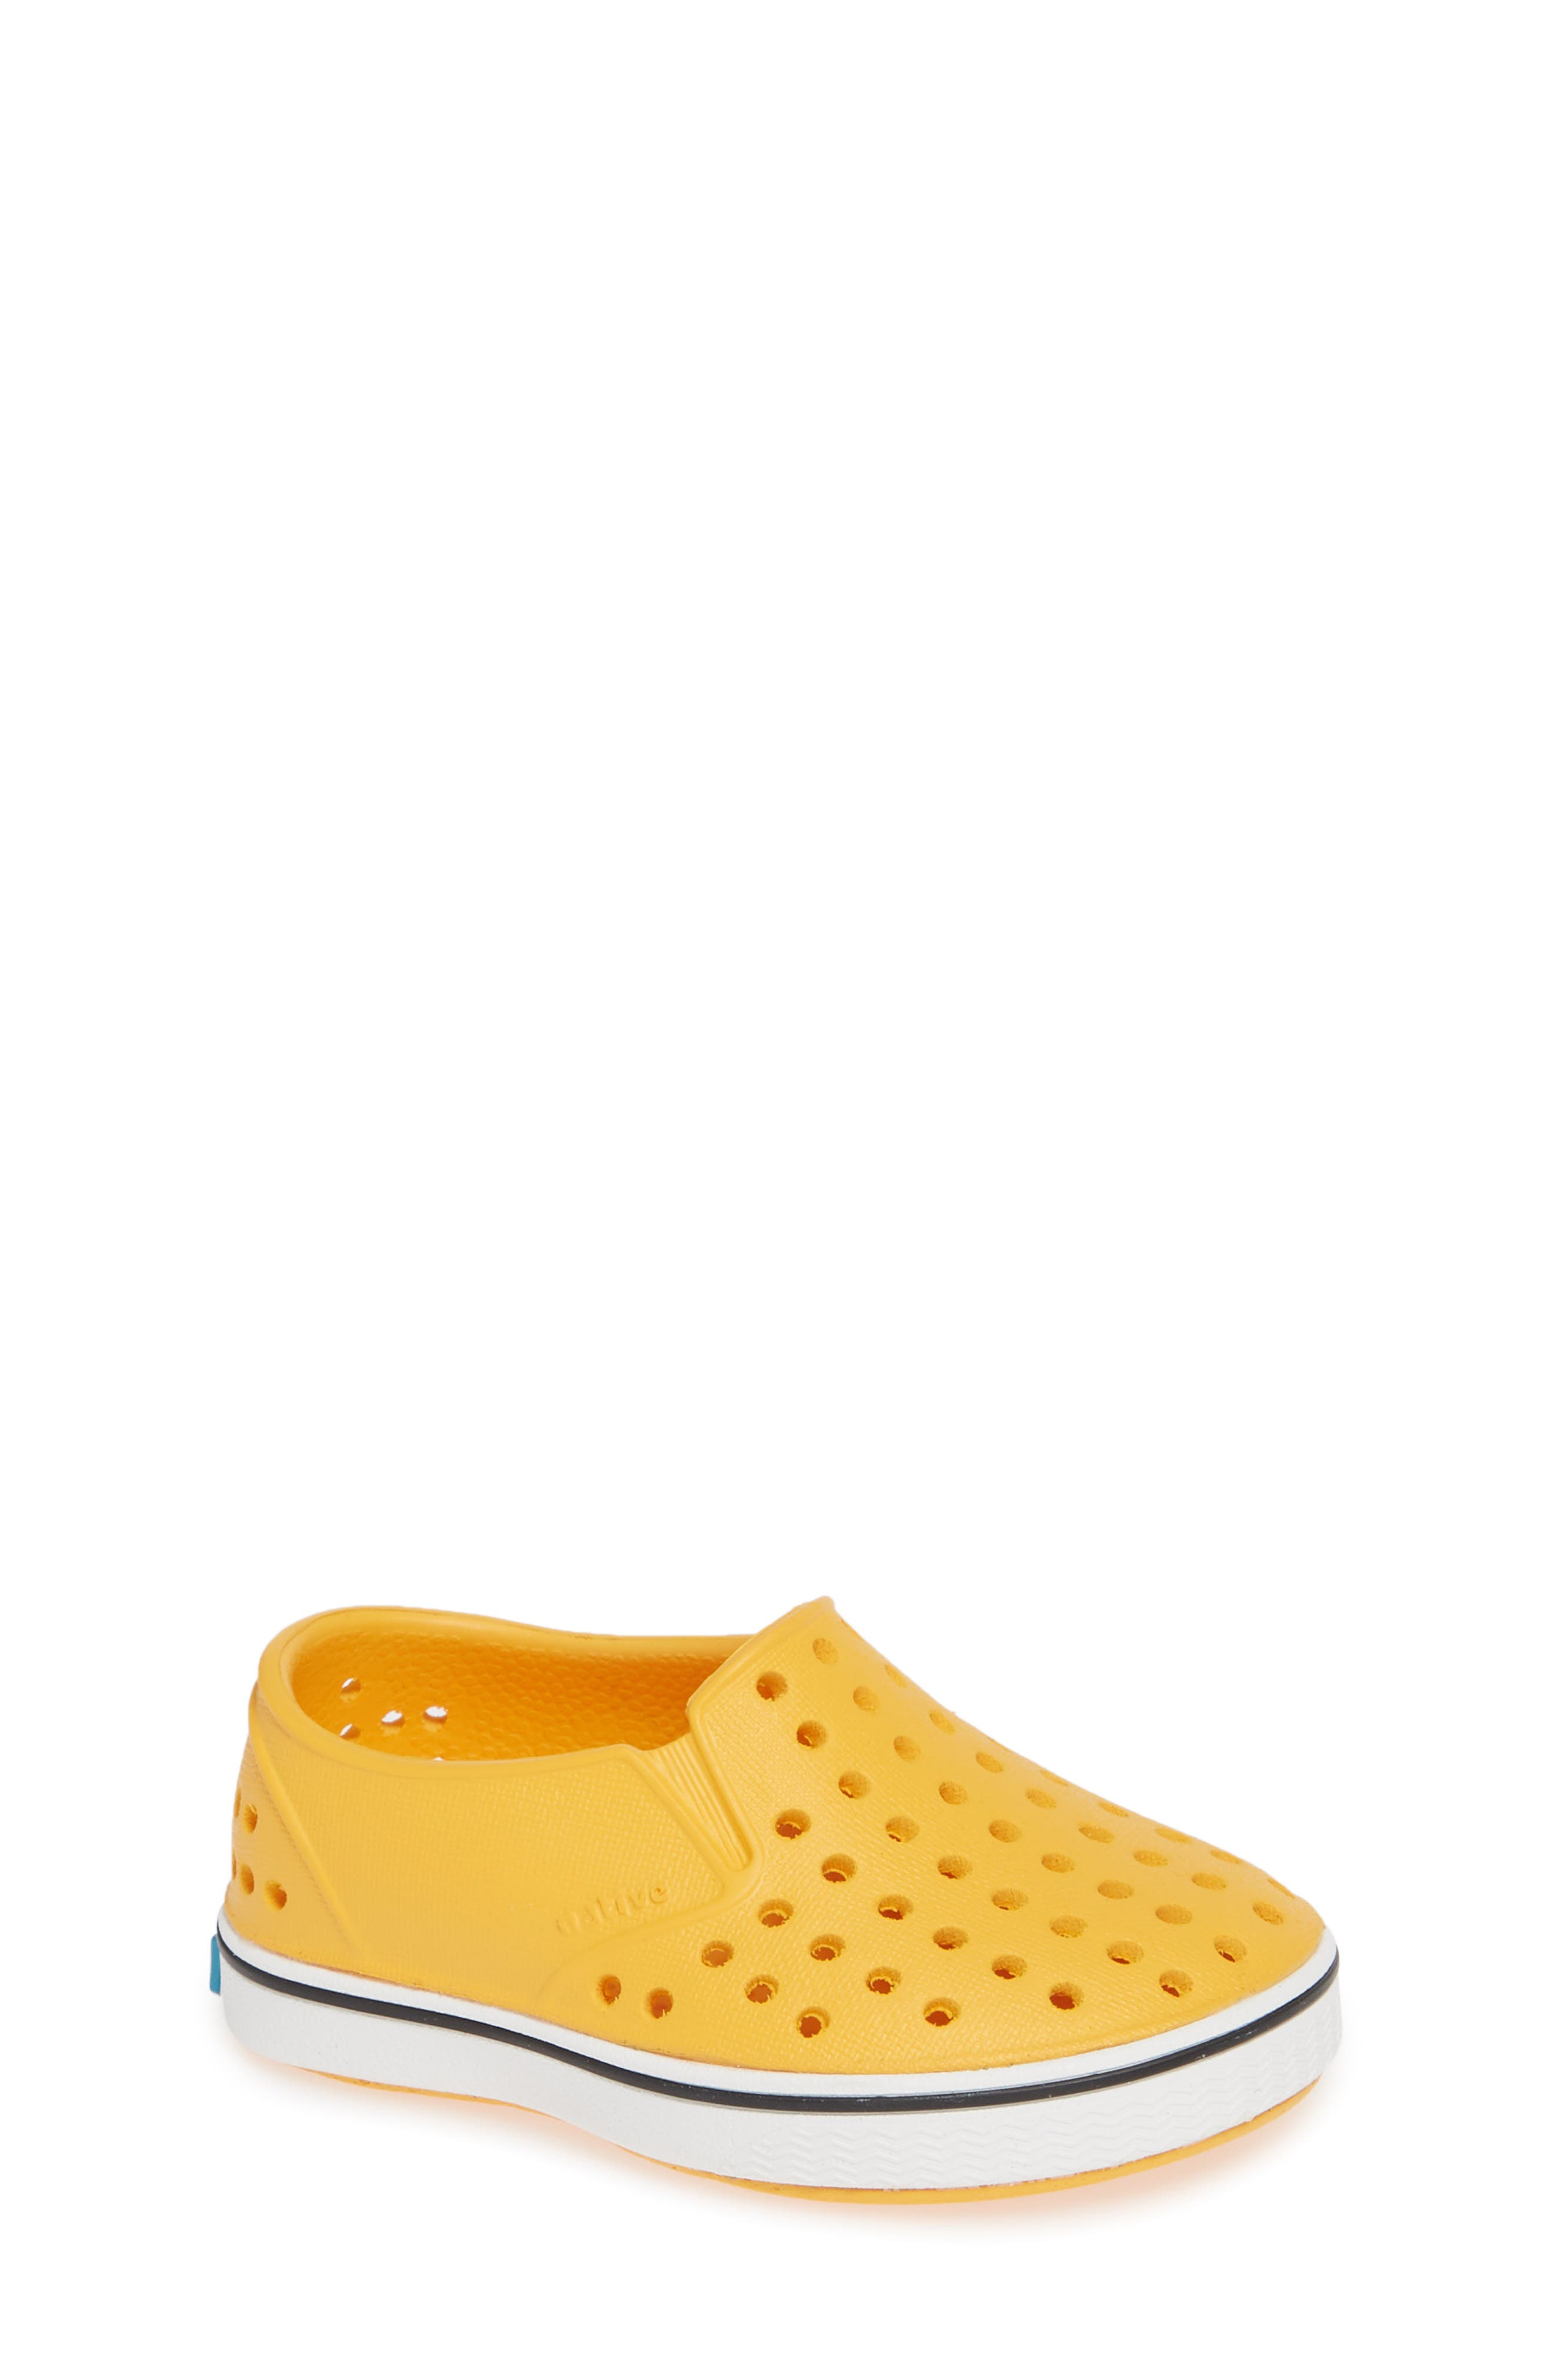 Miles Water Friendly Slip-On Sneaker,                             Main thumbnail 1, color,                             Beanie Yellow/ Shell White